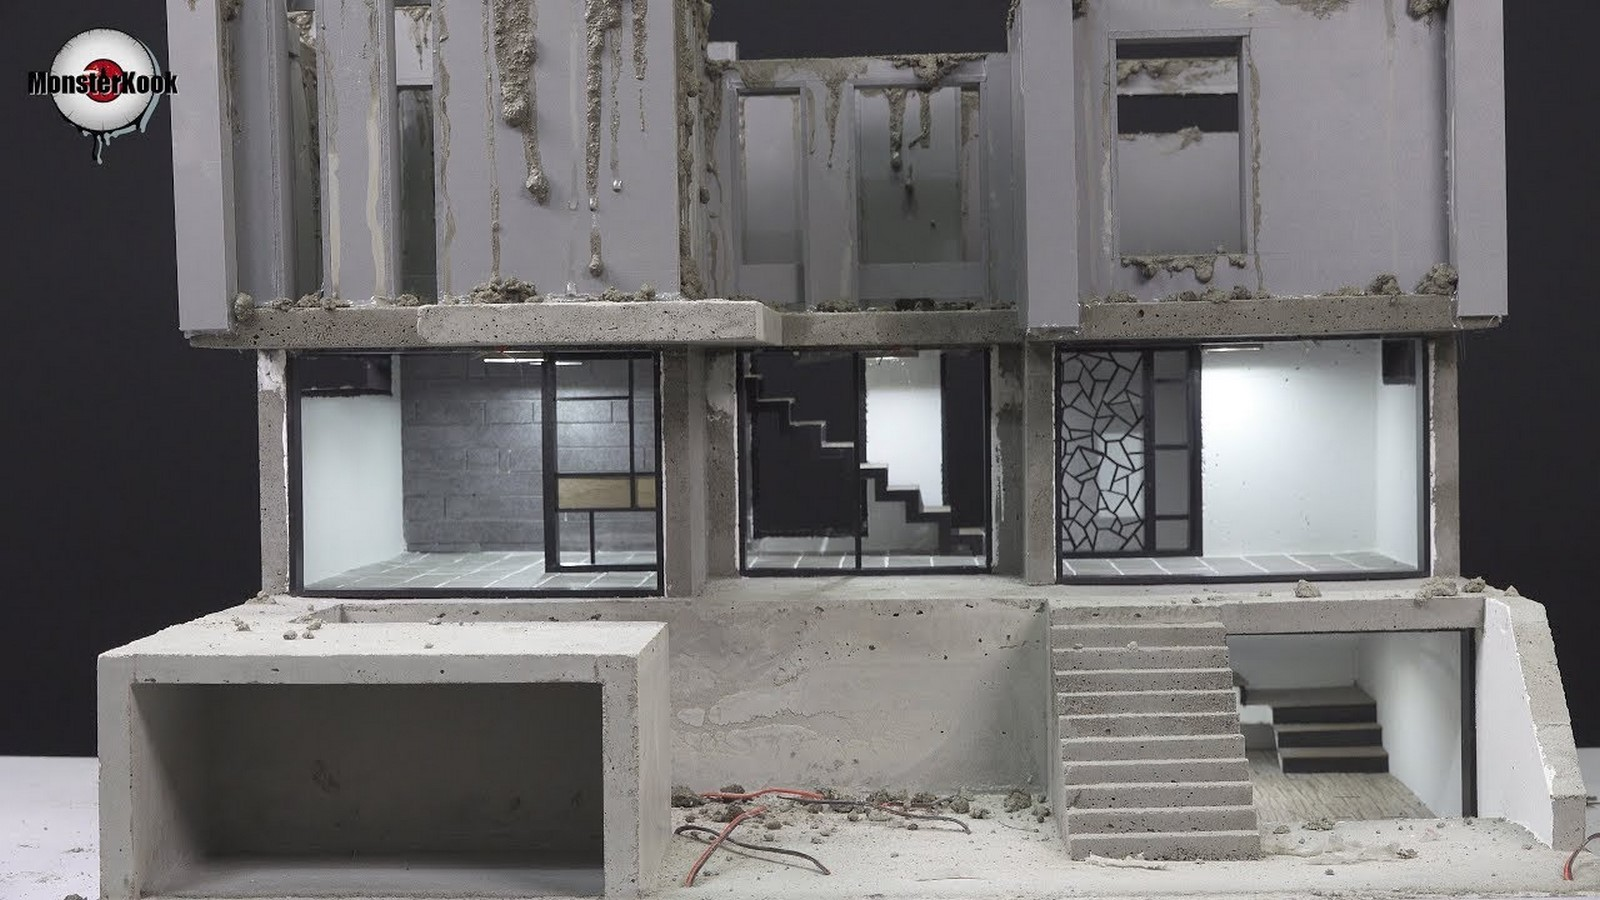 10 youtubers to watch for architectural model making-Monster Kook - Sheet2